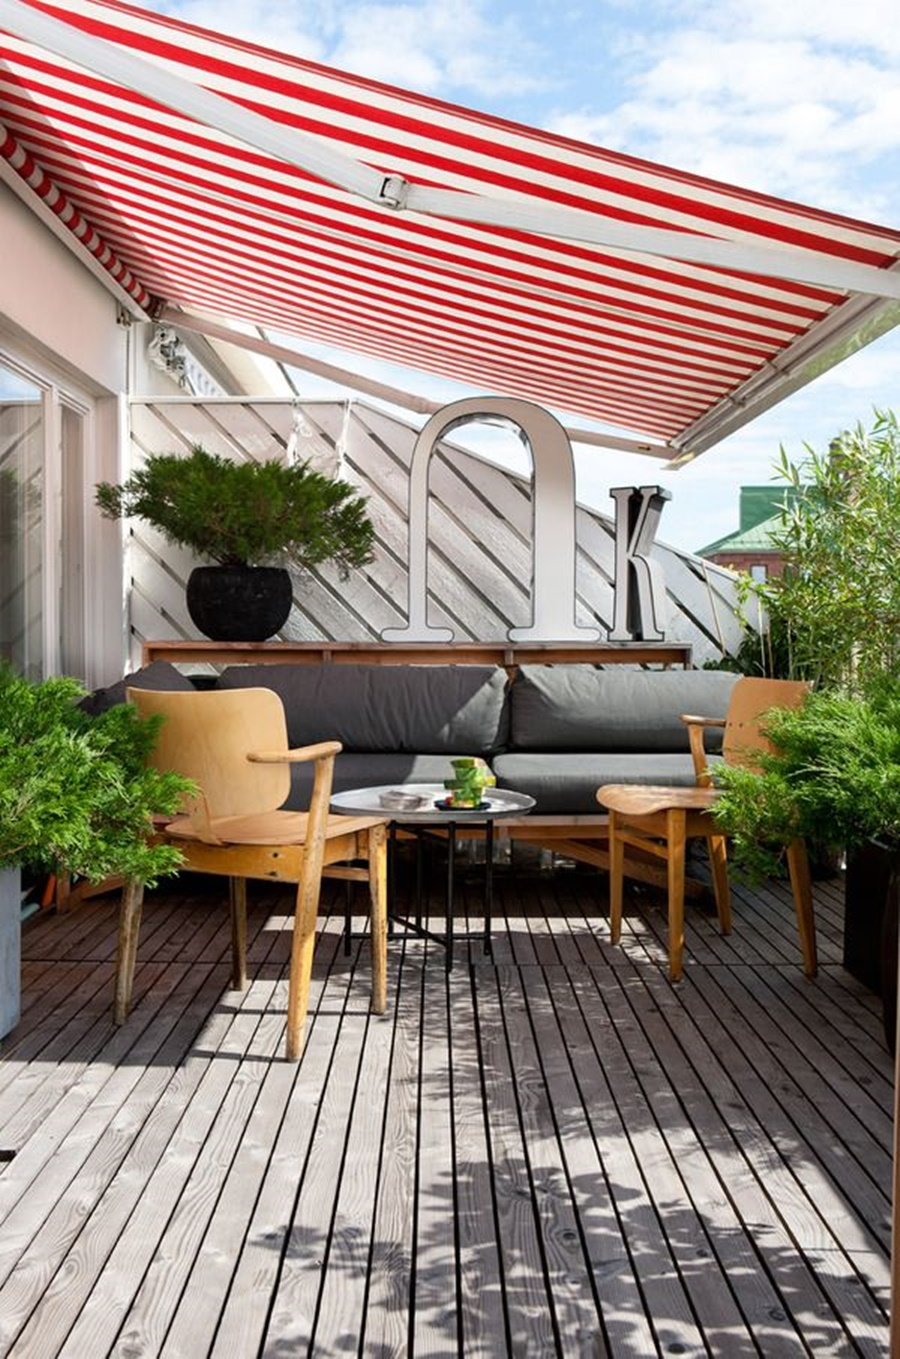 Image of: Deck Awnings